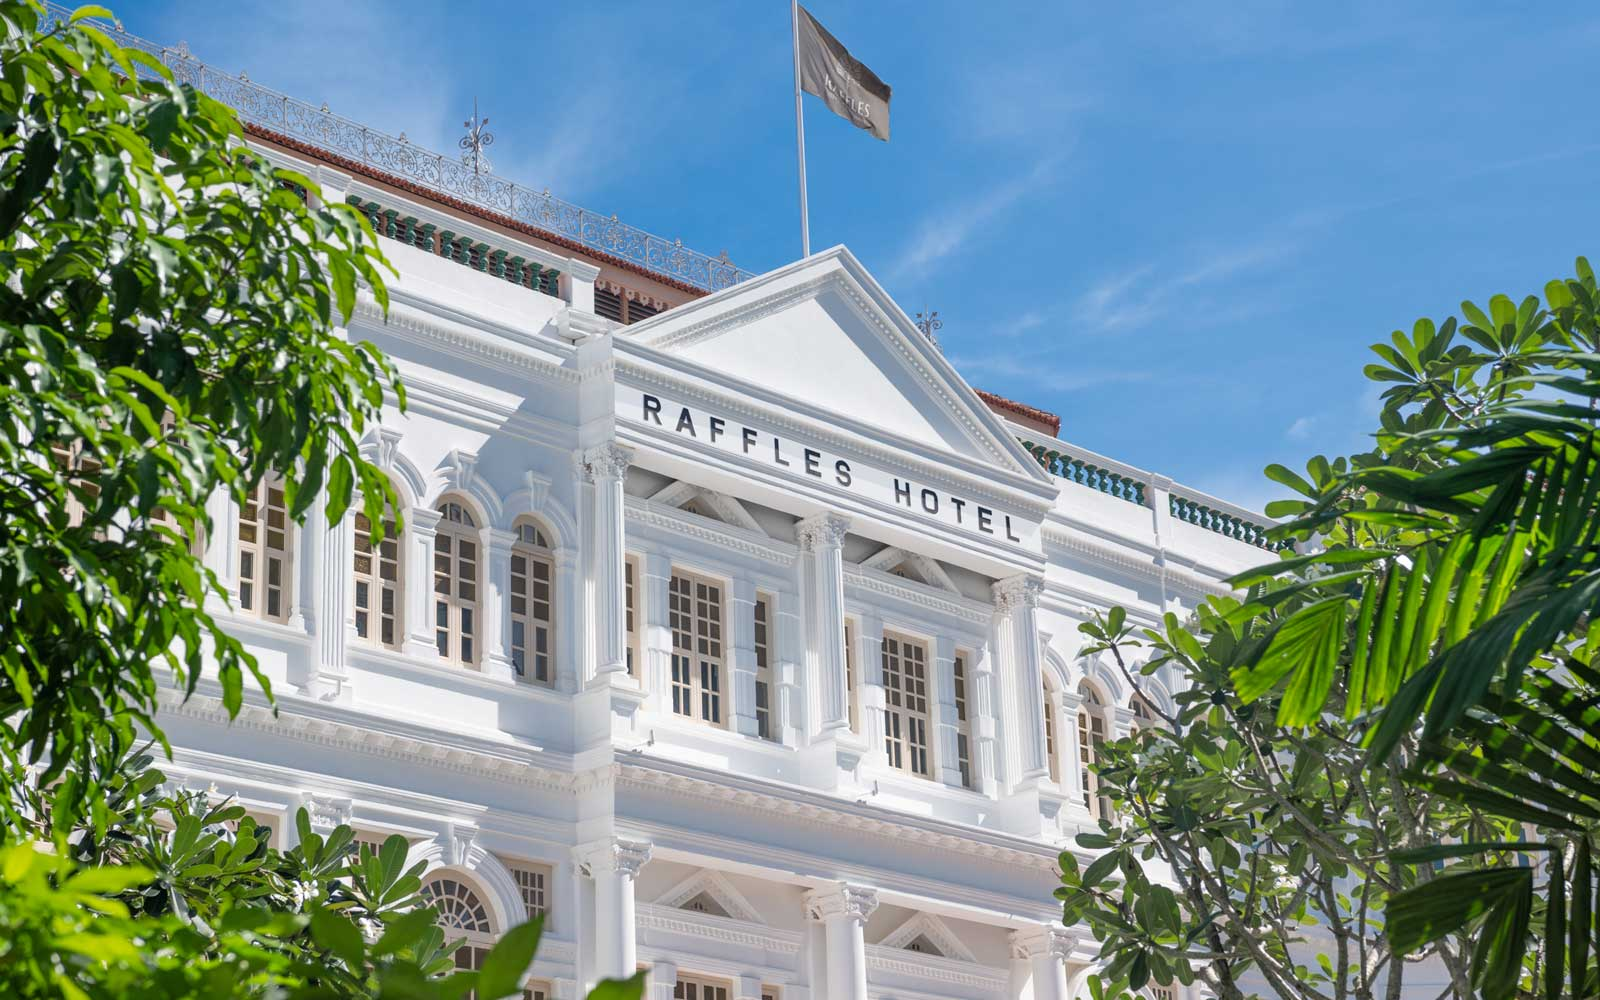 Singapore's Most Historic Hotel Reopens After 2-year Renovation